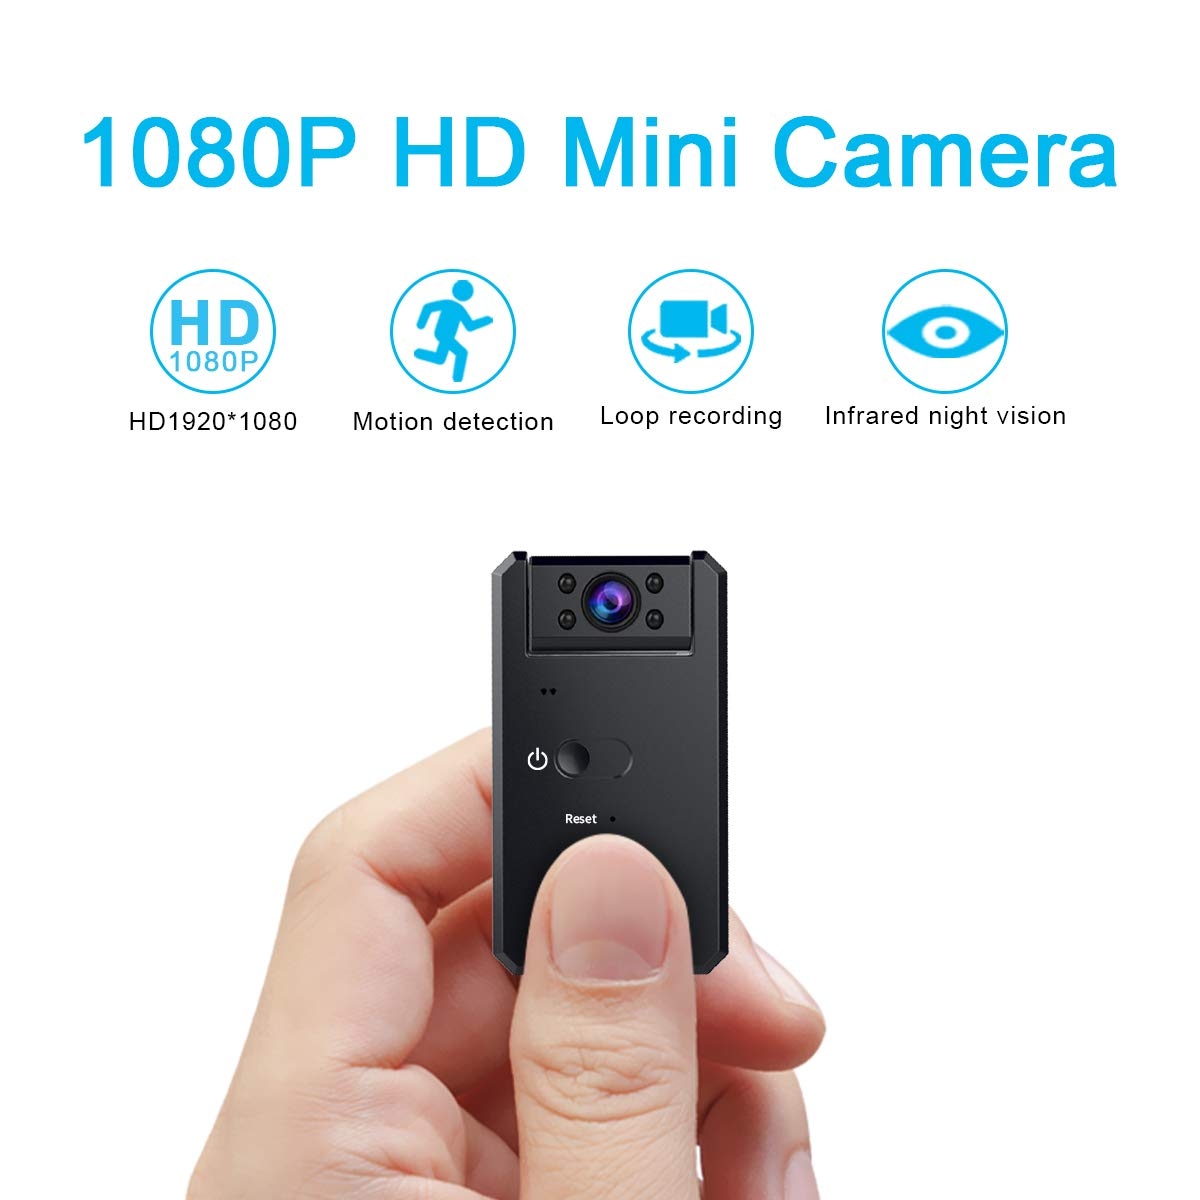 Hidden Camera-1080P Portable Mini Security Camera Nanny Cam with Night Vision/Motion Detection /1200mAh Battery for Home and Office,Indoor/Outdoor Use-No WiFi Function by lnzee